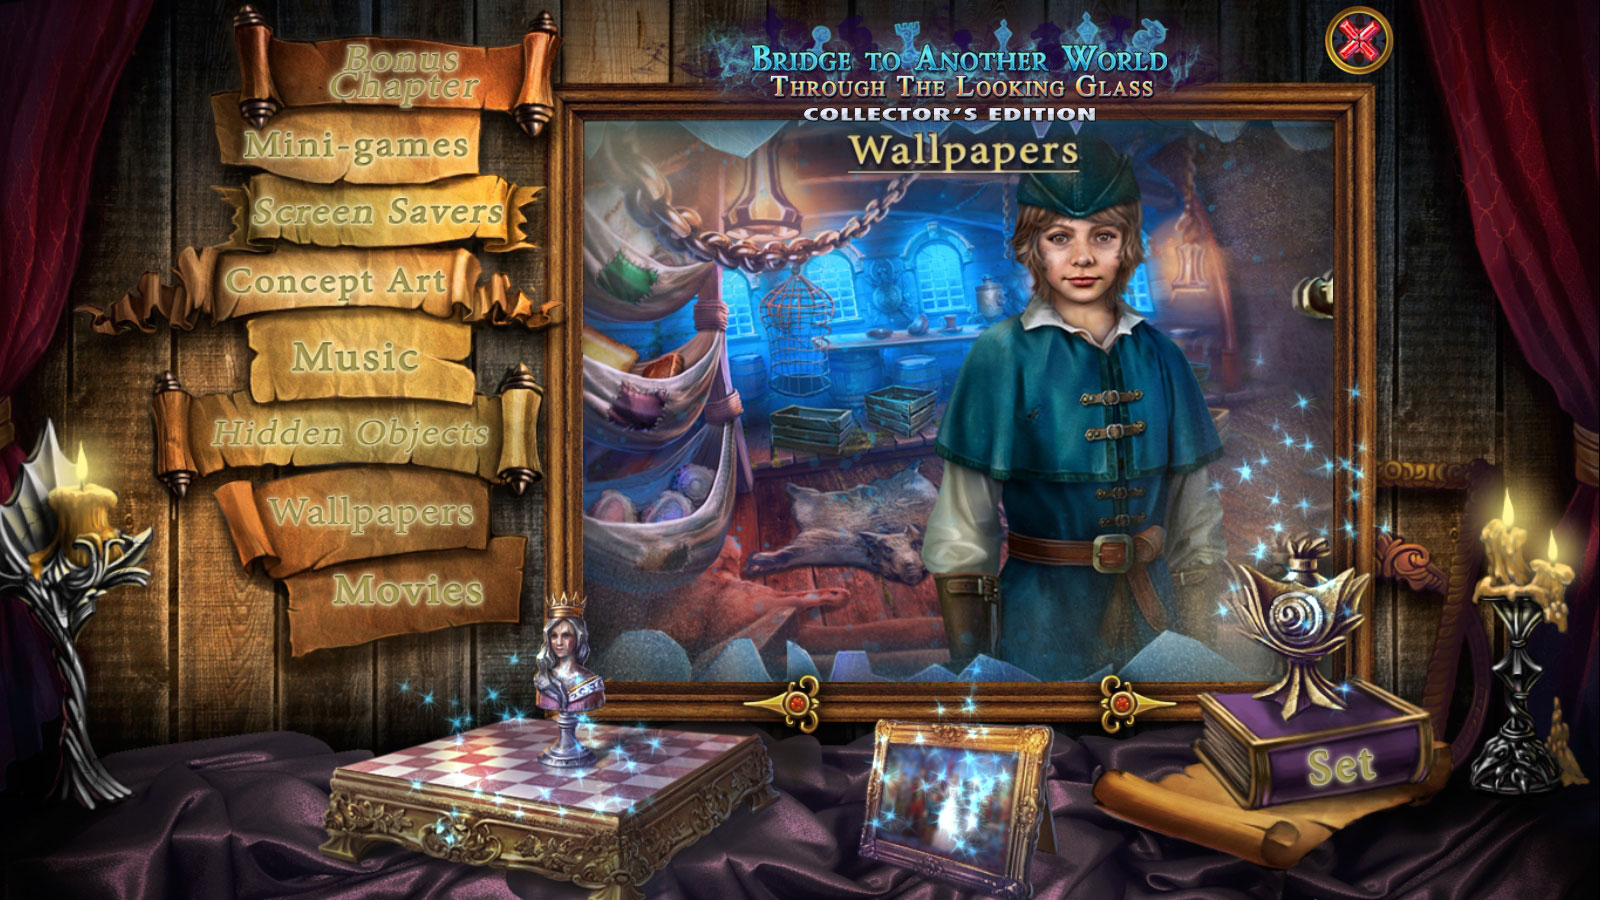 Bridge to Another World: Through the Looking Glass Collector's Edition Free Download